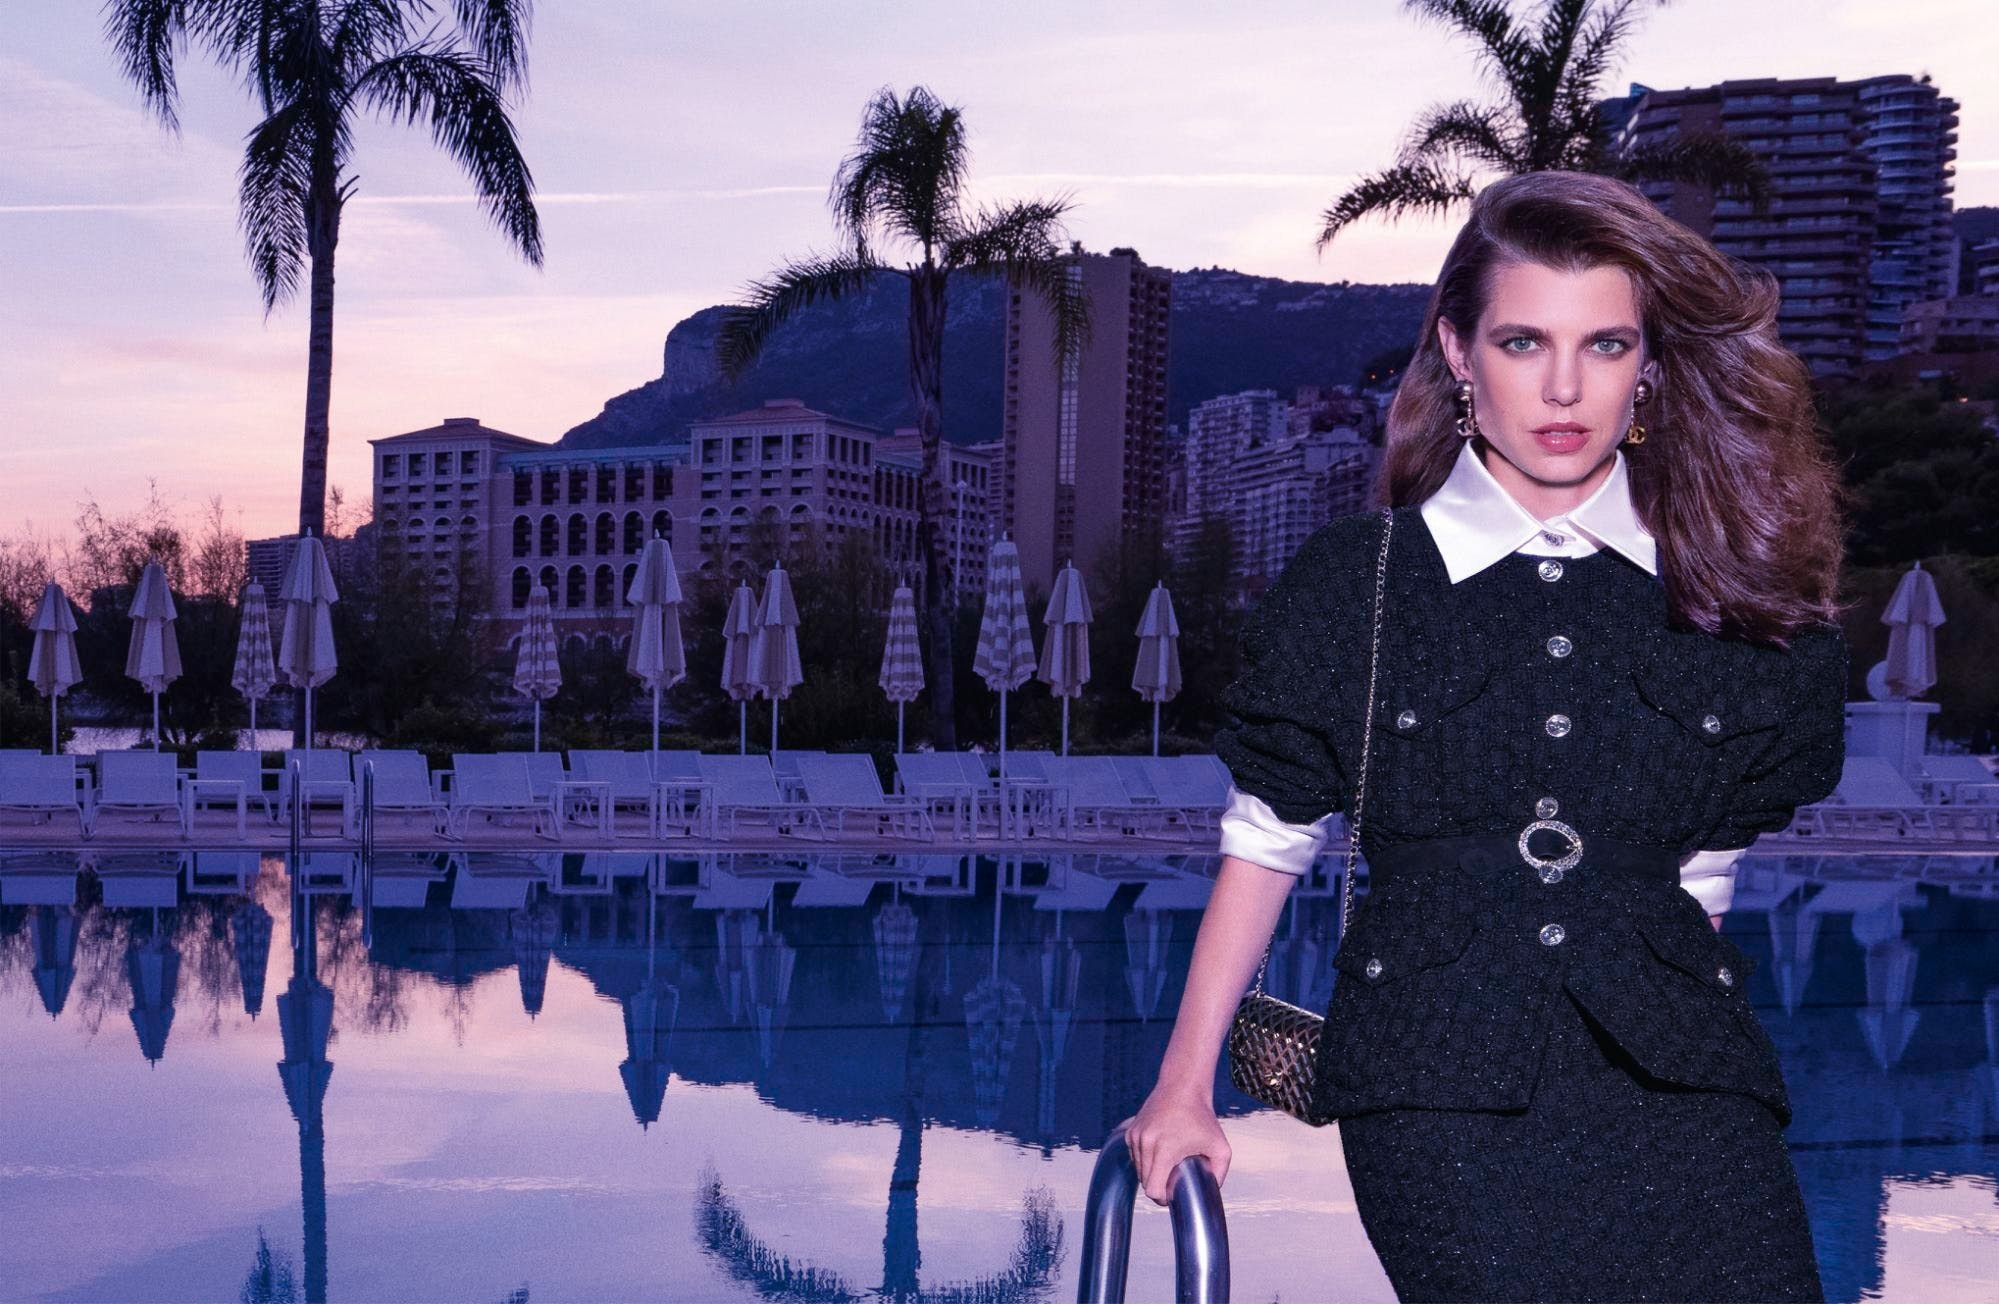 CHANEL REVEALS FIRST CAMPAIGN STARRING CHARLOTTE CASIRAGHI